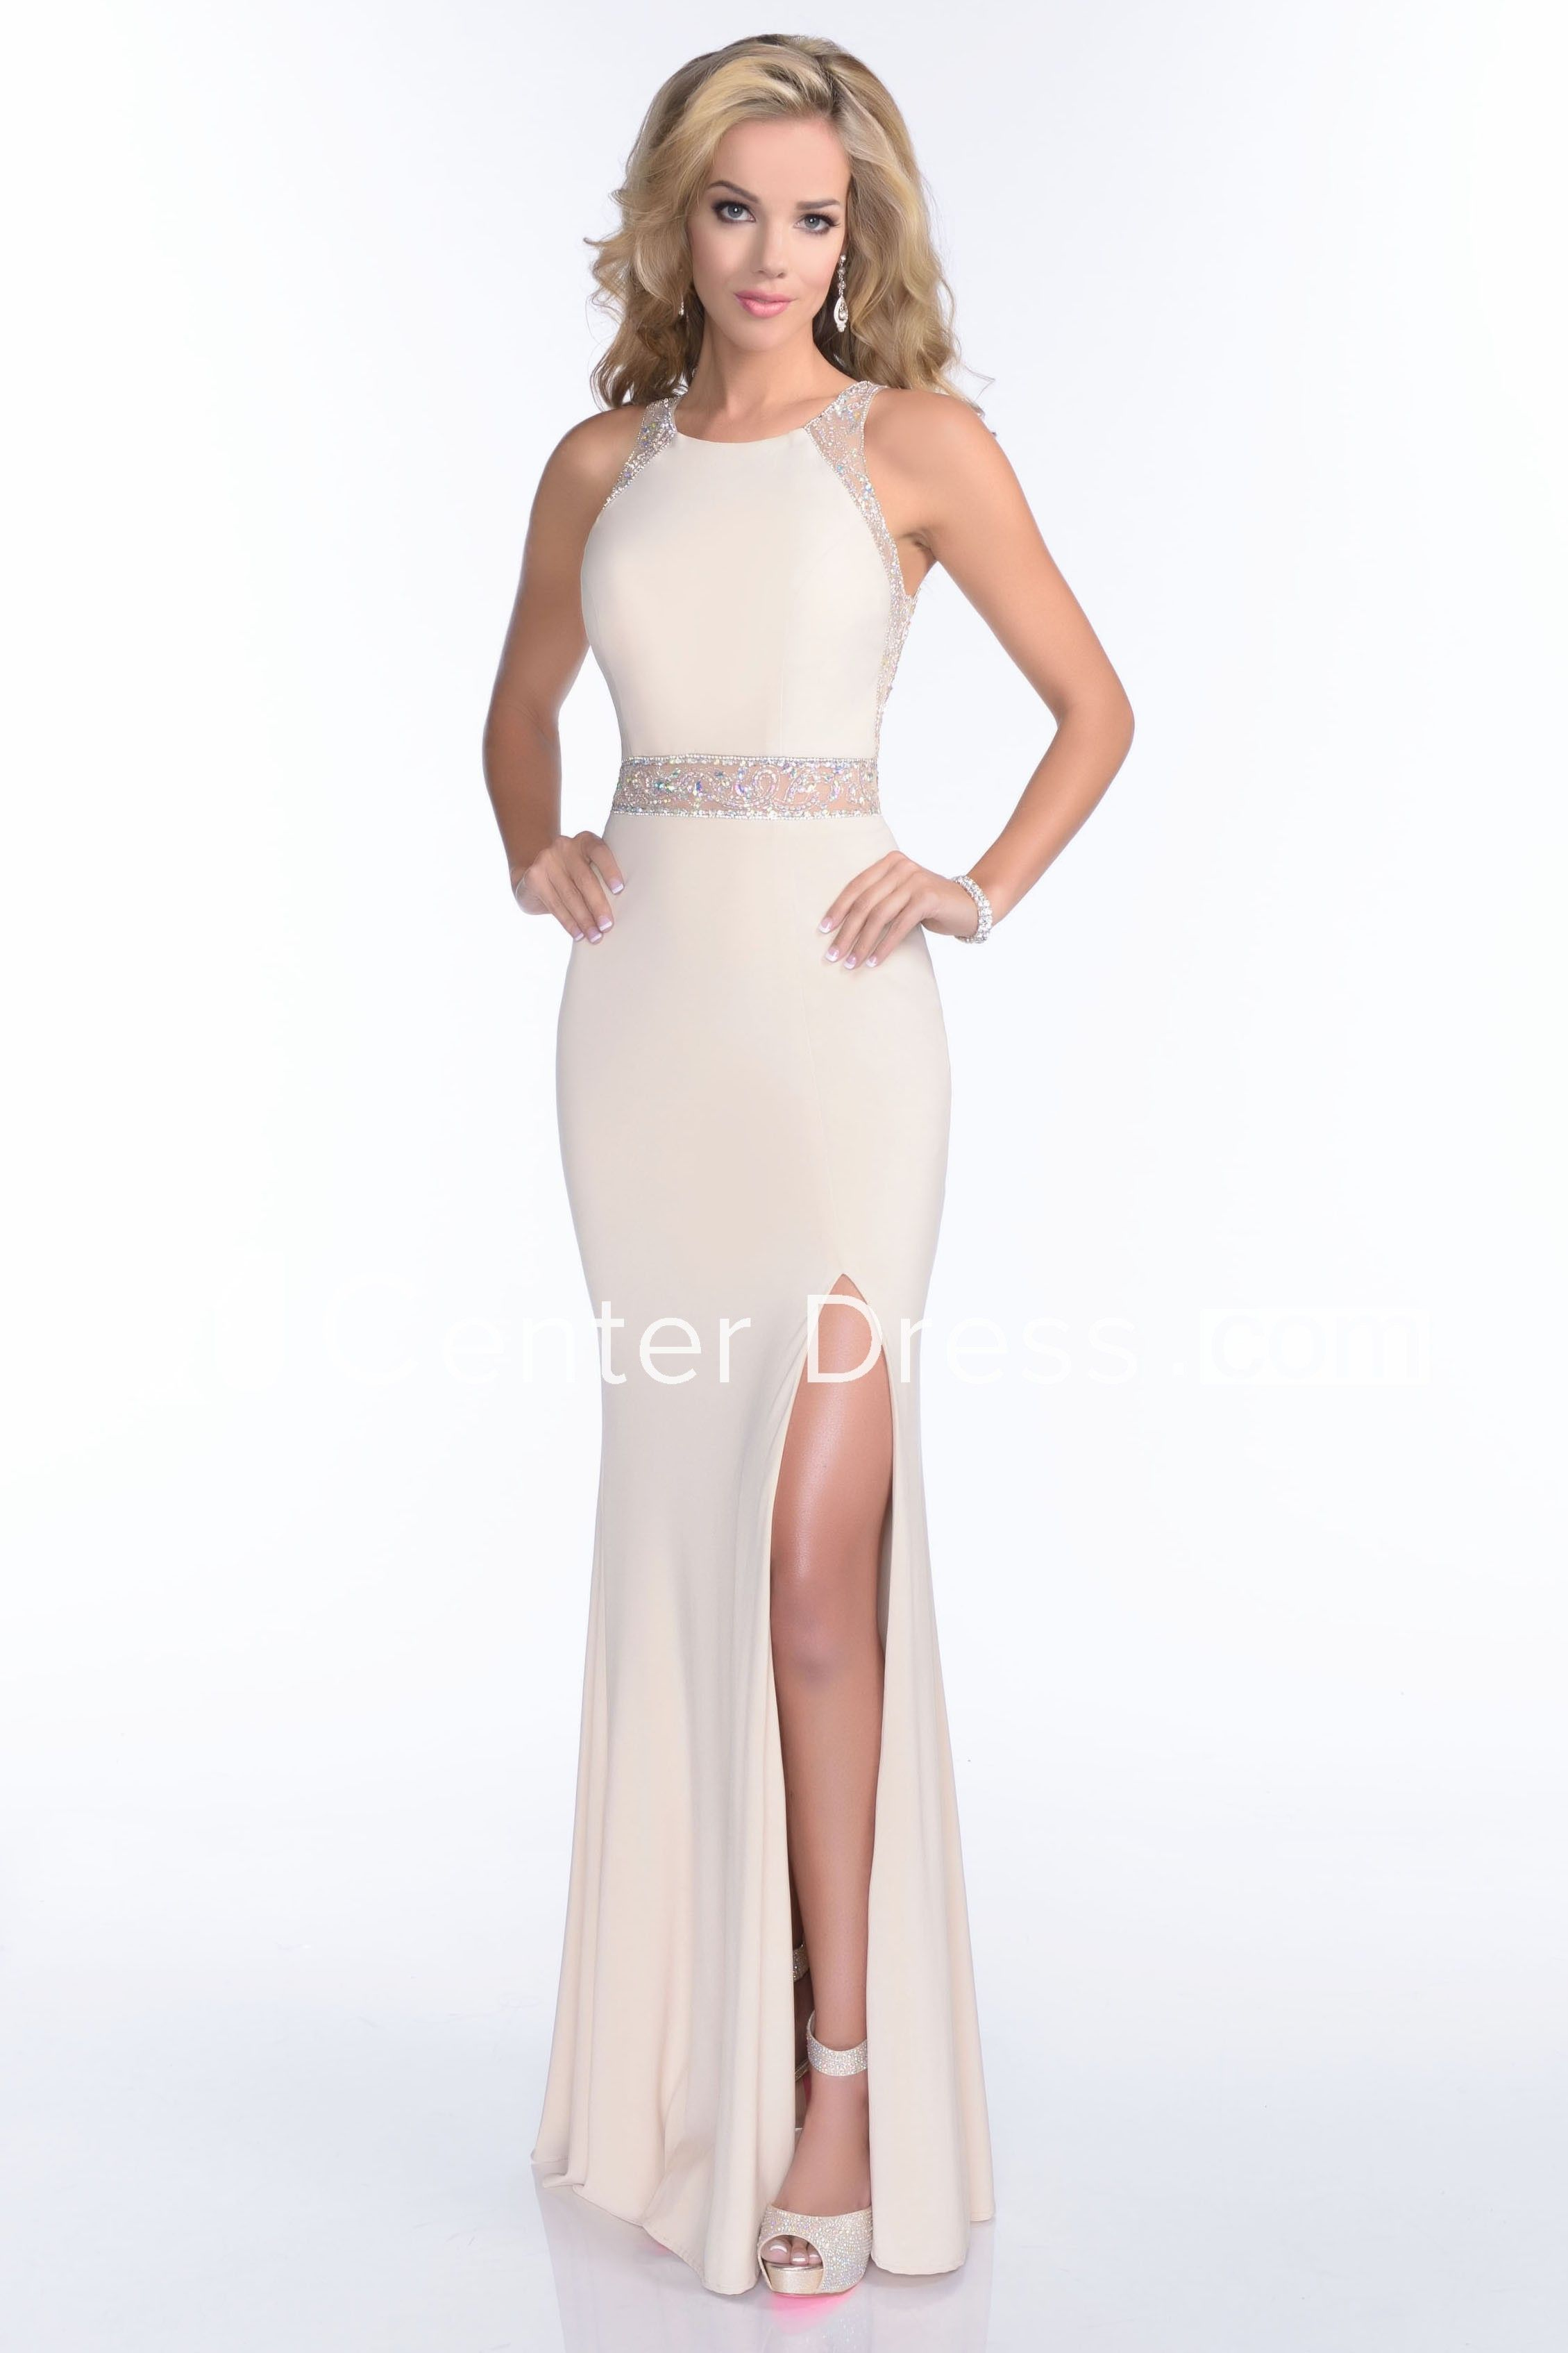 2b0ee021fa5 Mermaid Jersey Side Slit Sleeveless Prom Dress With Crystal Embroidery And Illusion  Back - UCenter Dress